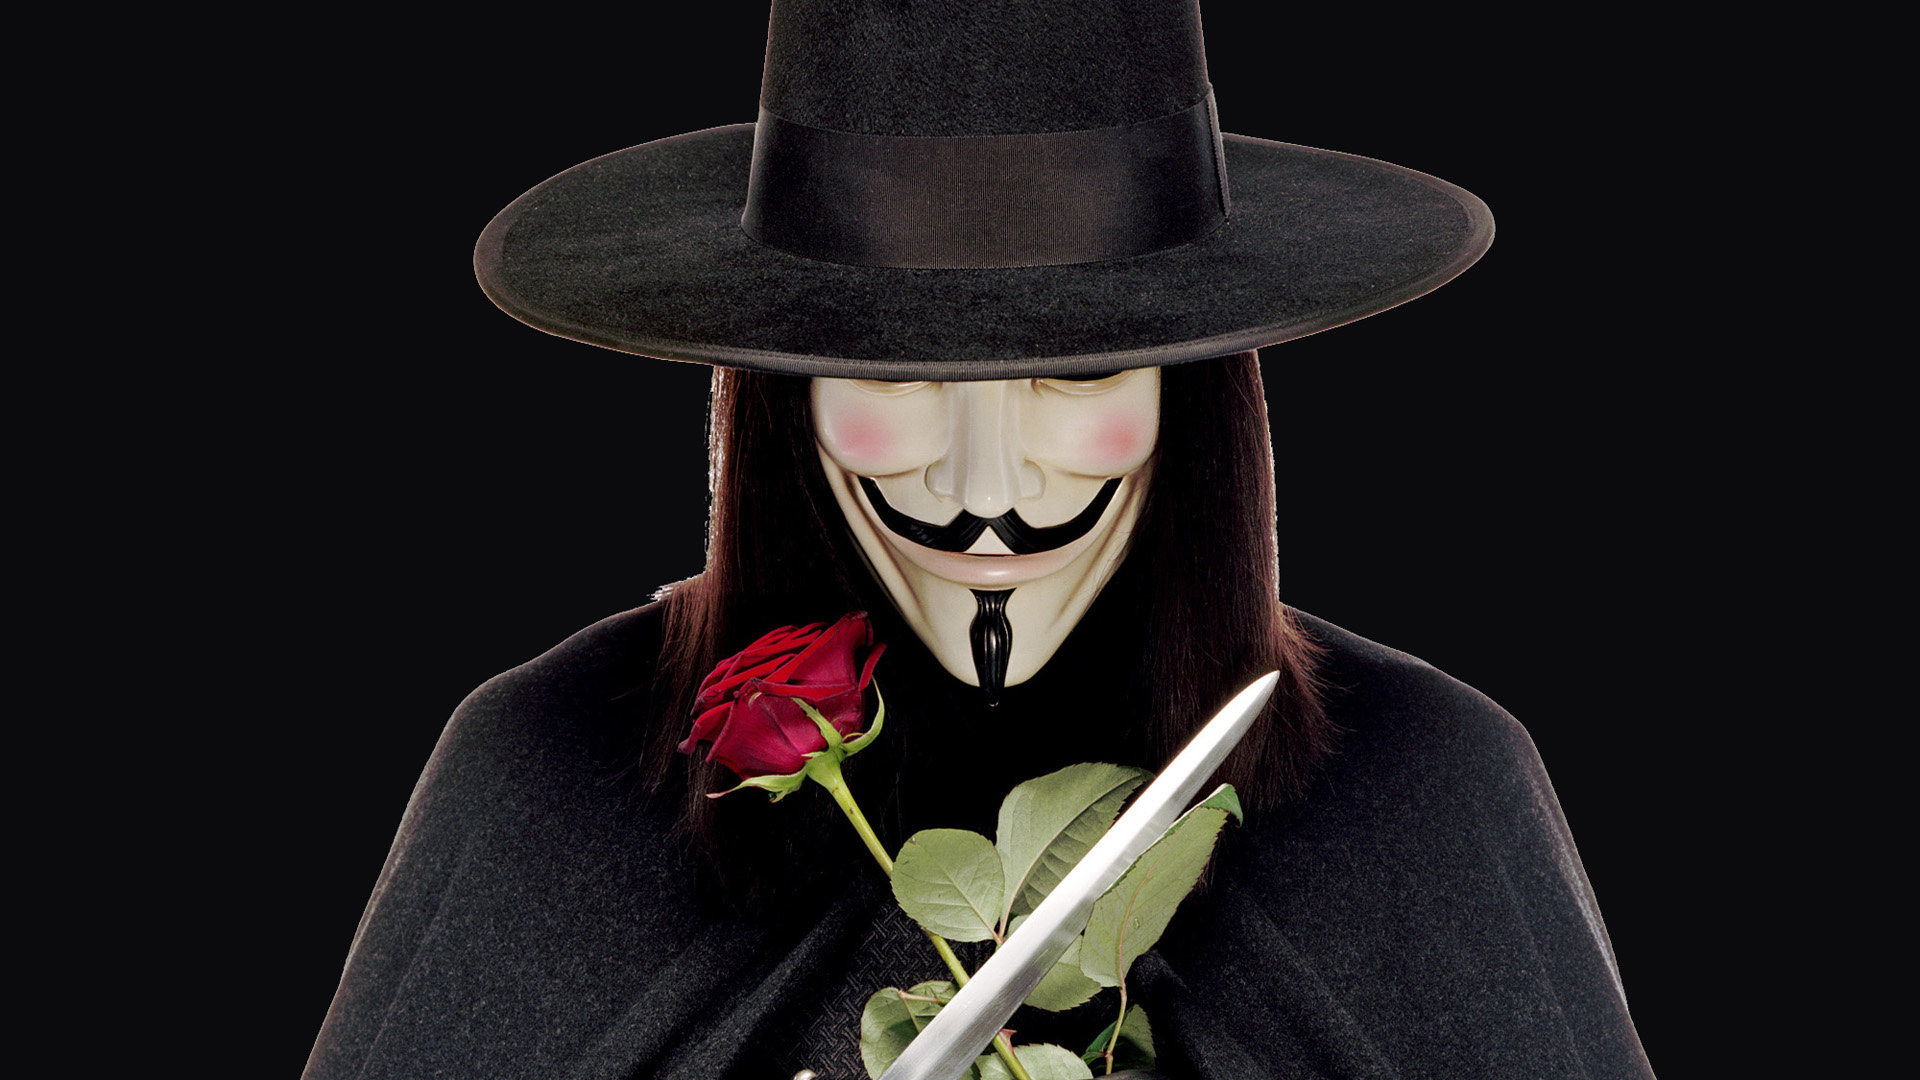 V for vendetta hd wallpaper background image 1920x1080 - V wallpaper hd ...